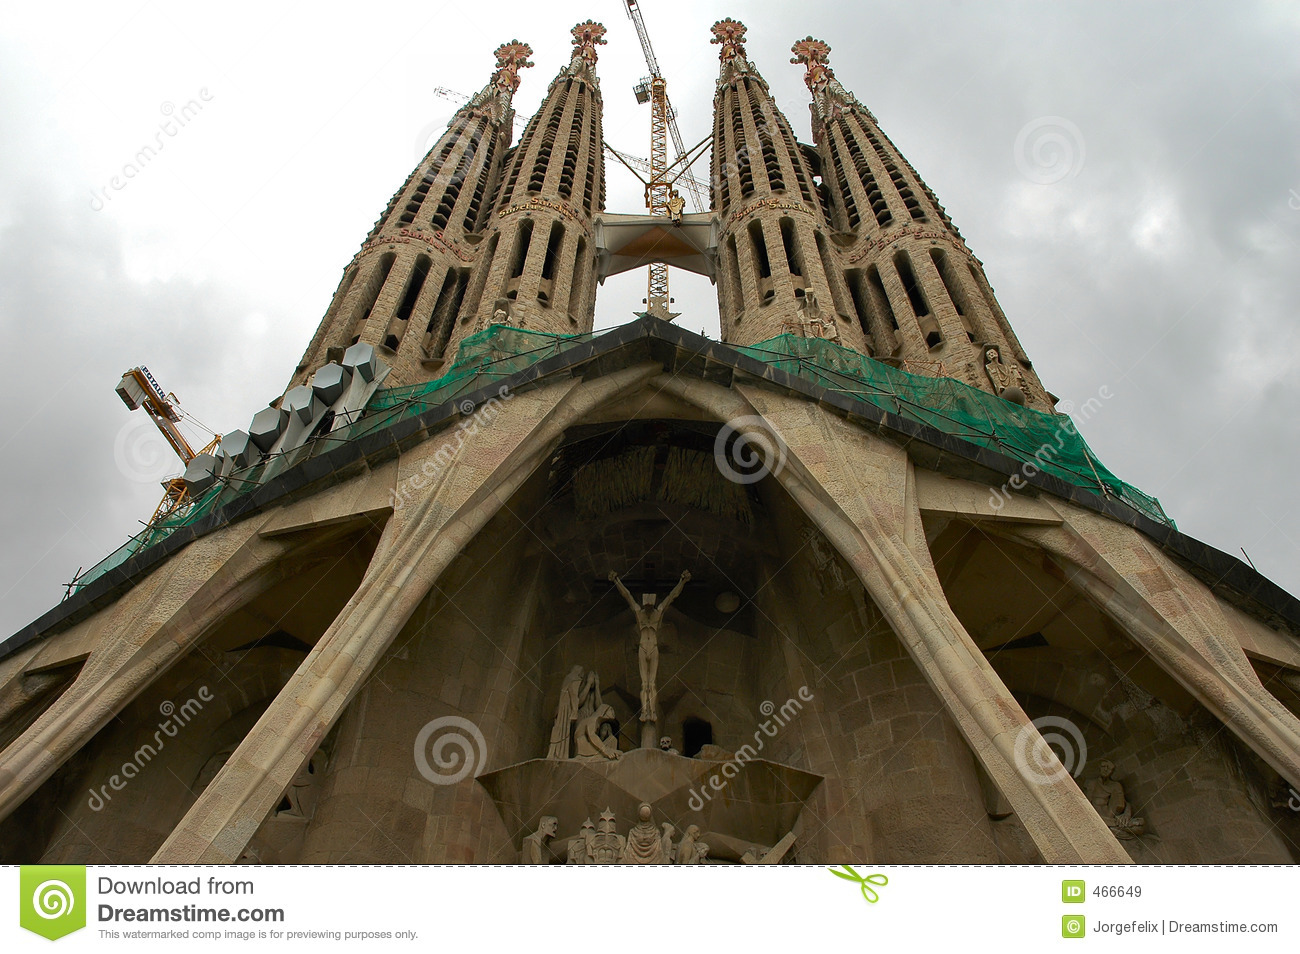 Barcelona - Unfinished cathedral